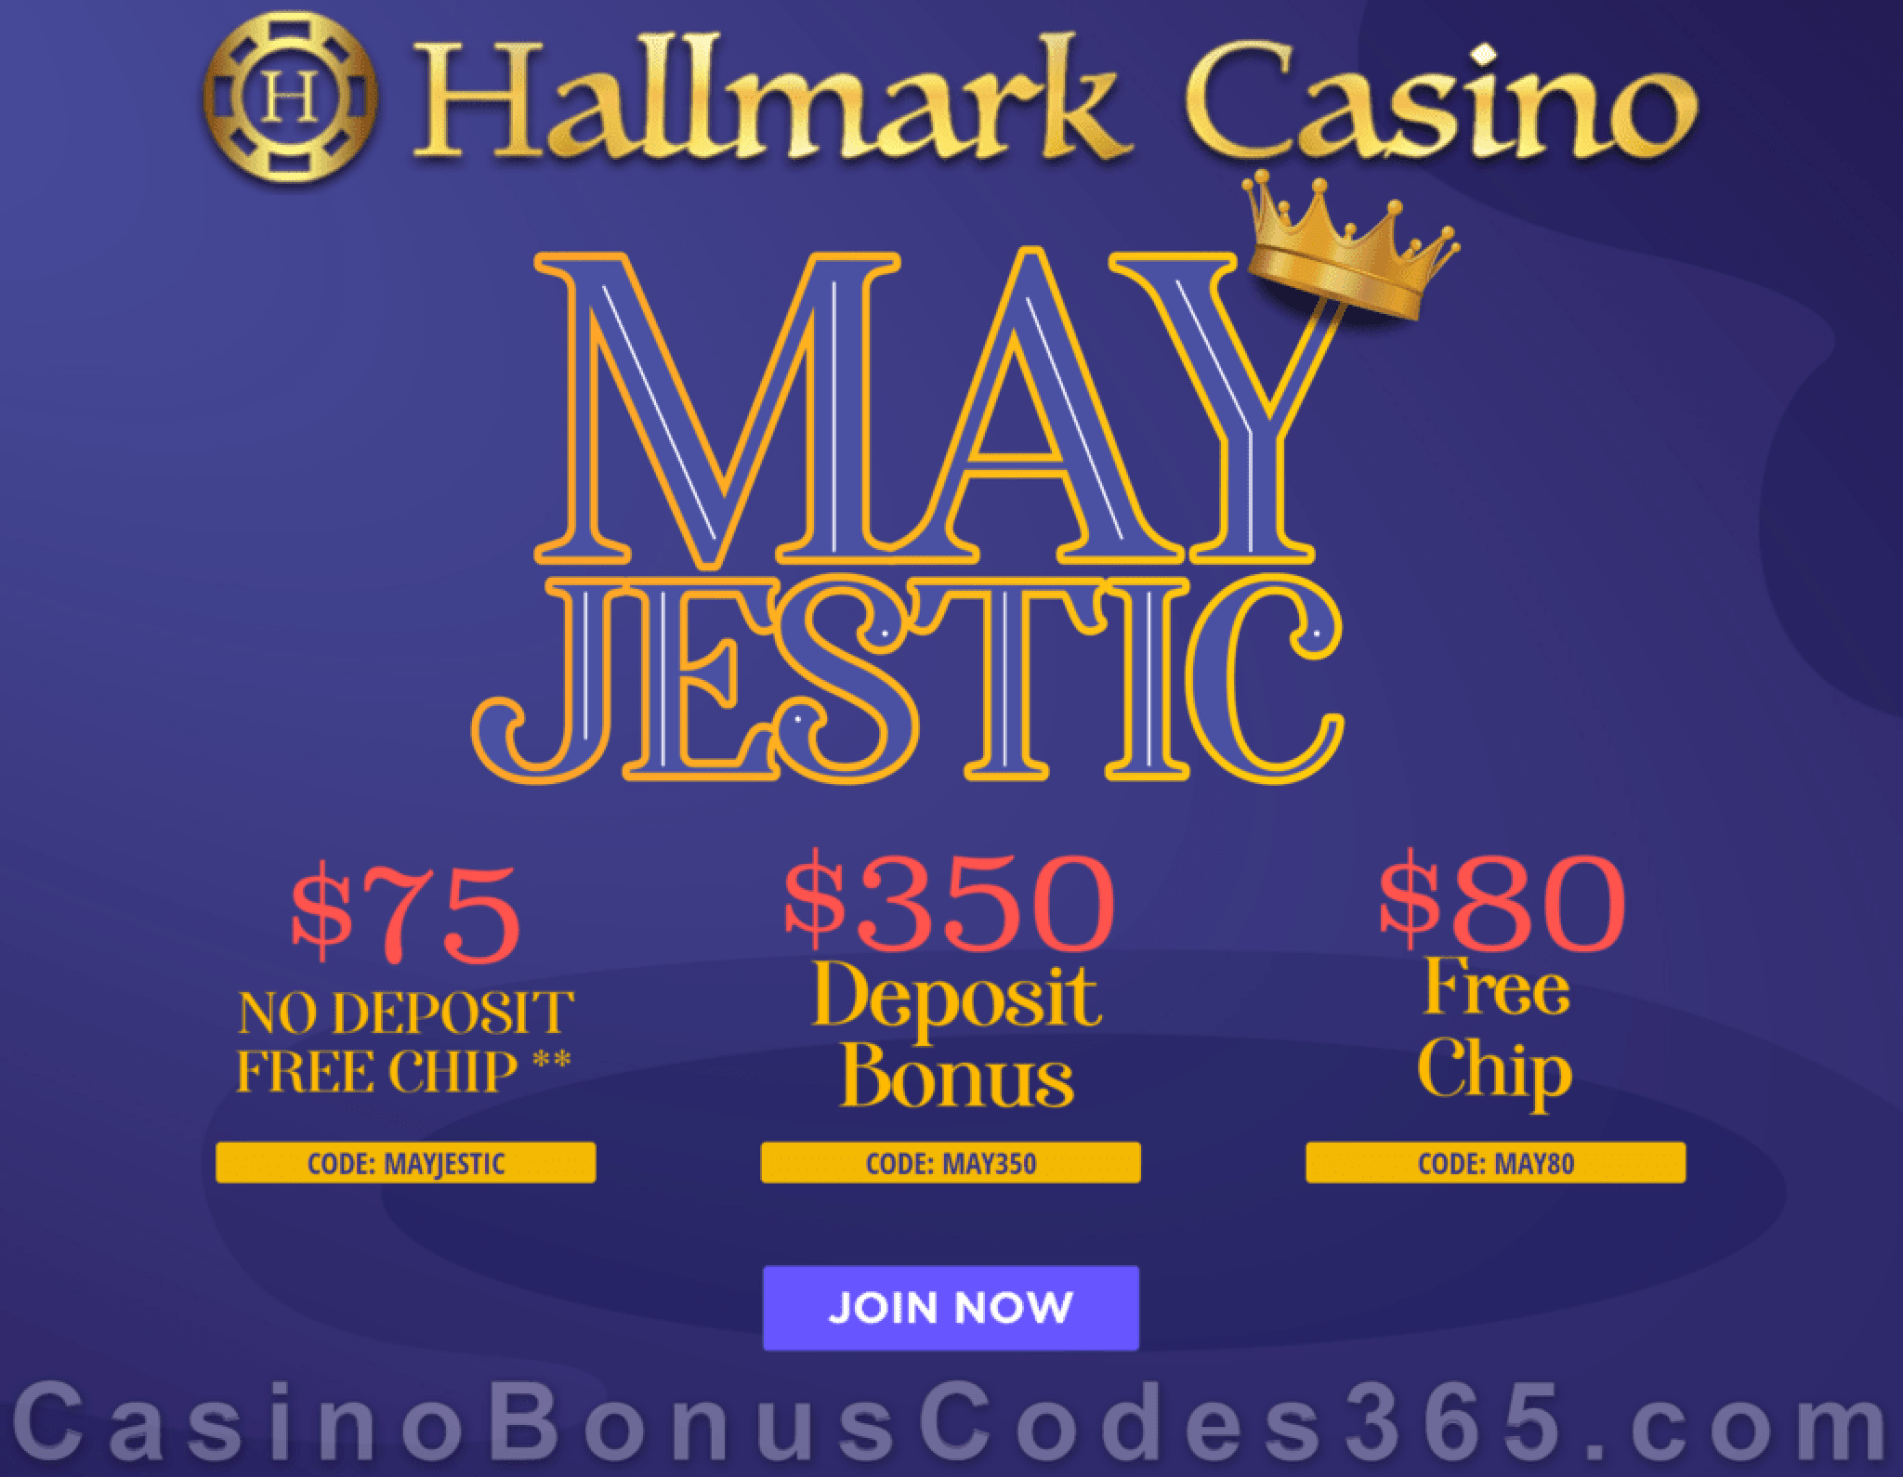 Hallmark Casino $150 FREE Chip and 350% Match Bonus Special Mayjestic Deal